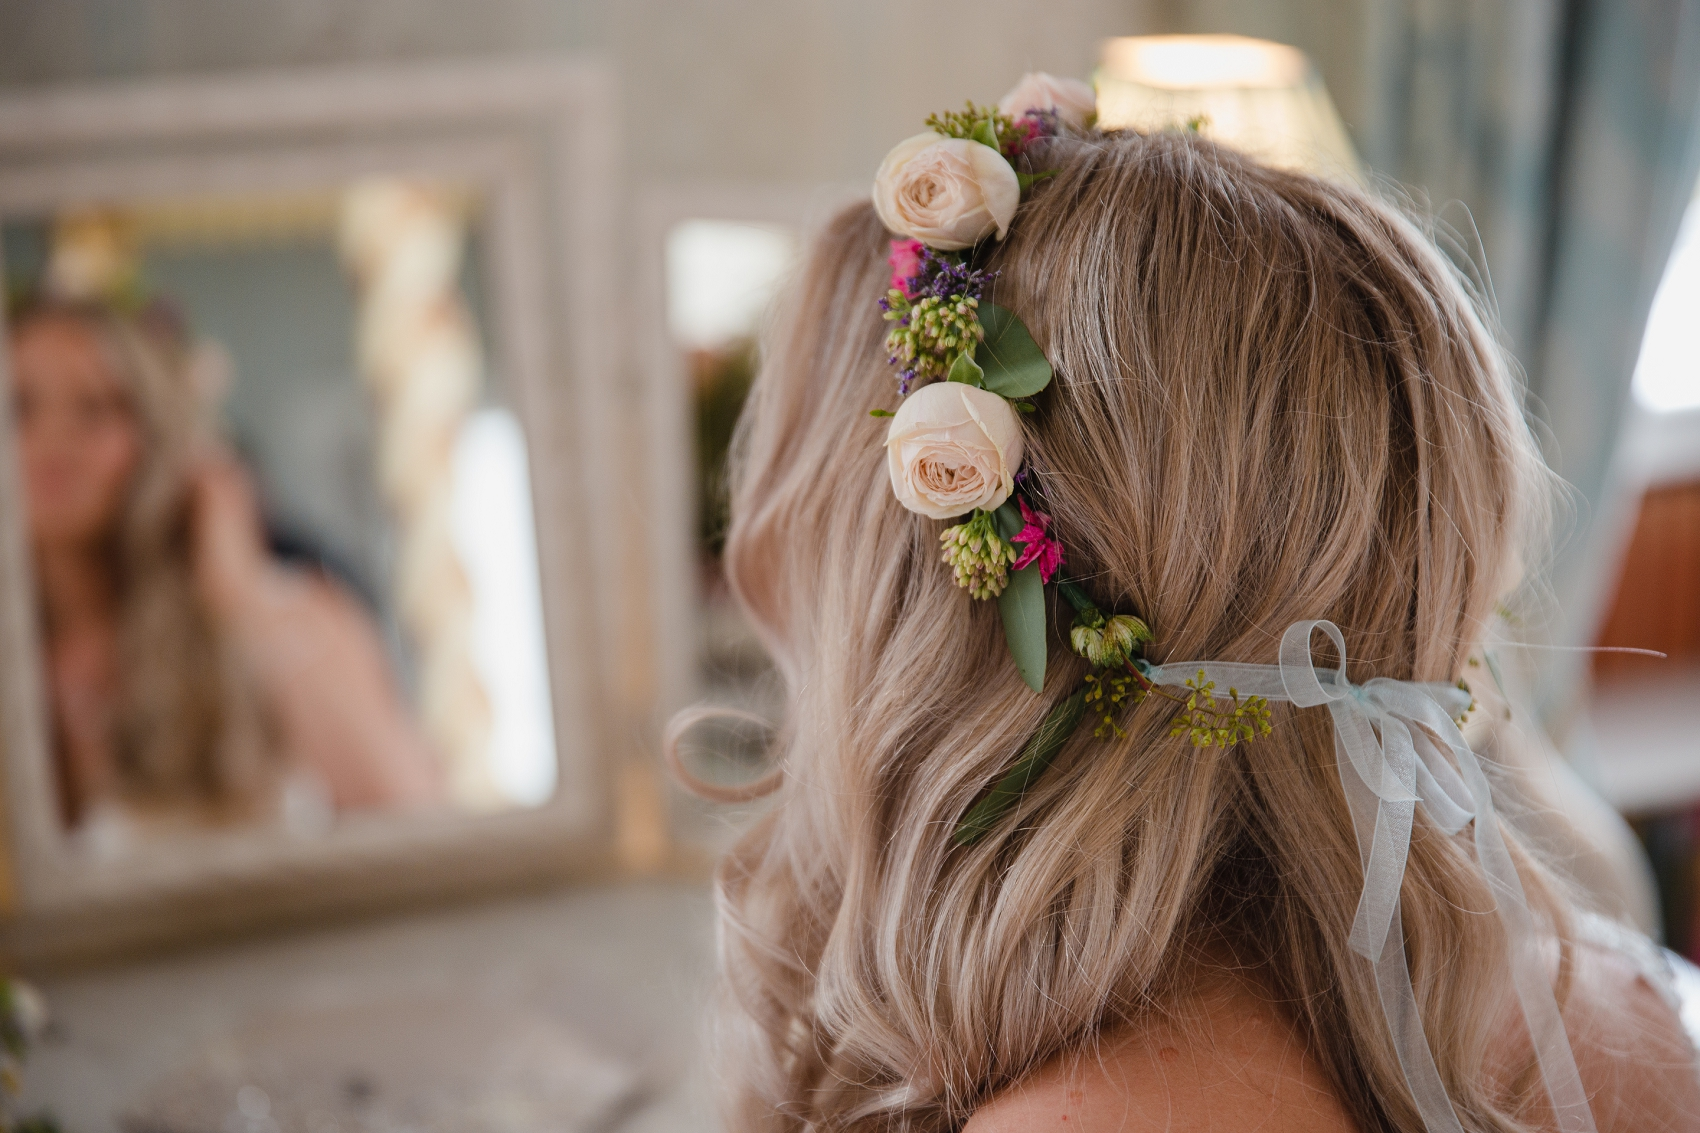 Spring wedding style flower crown